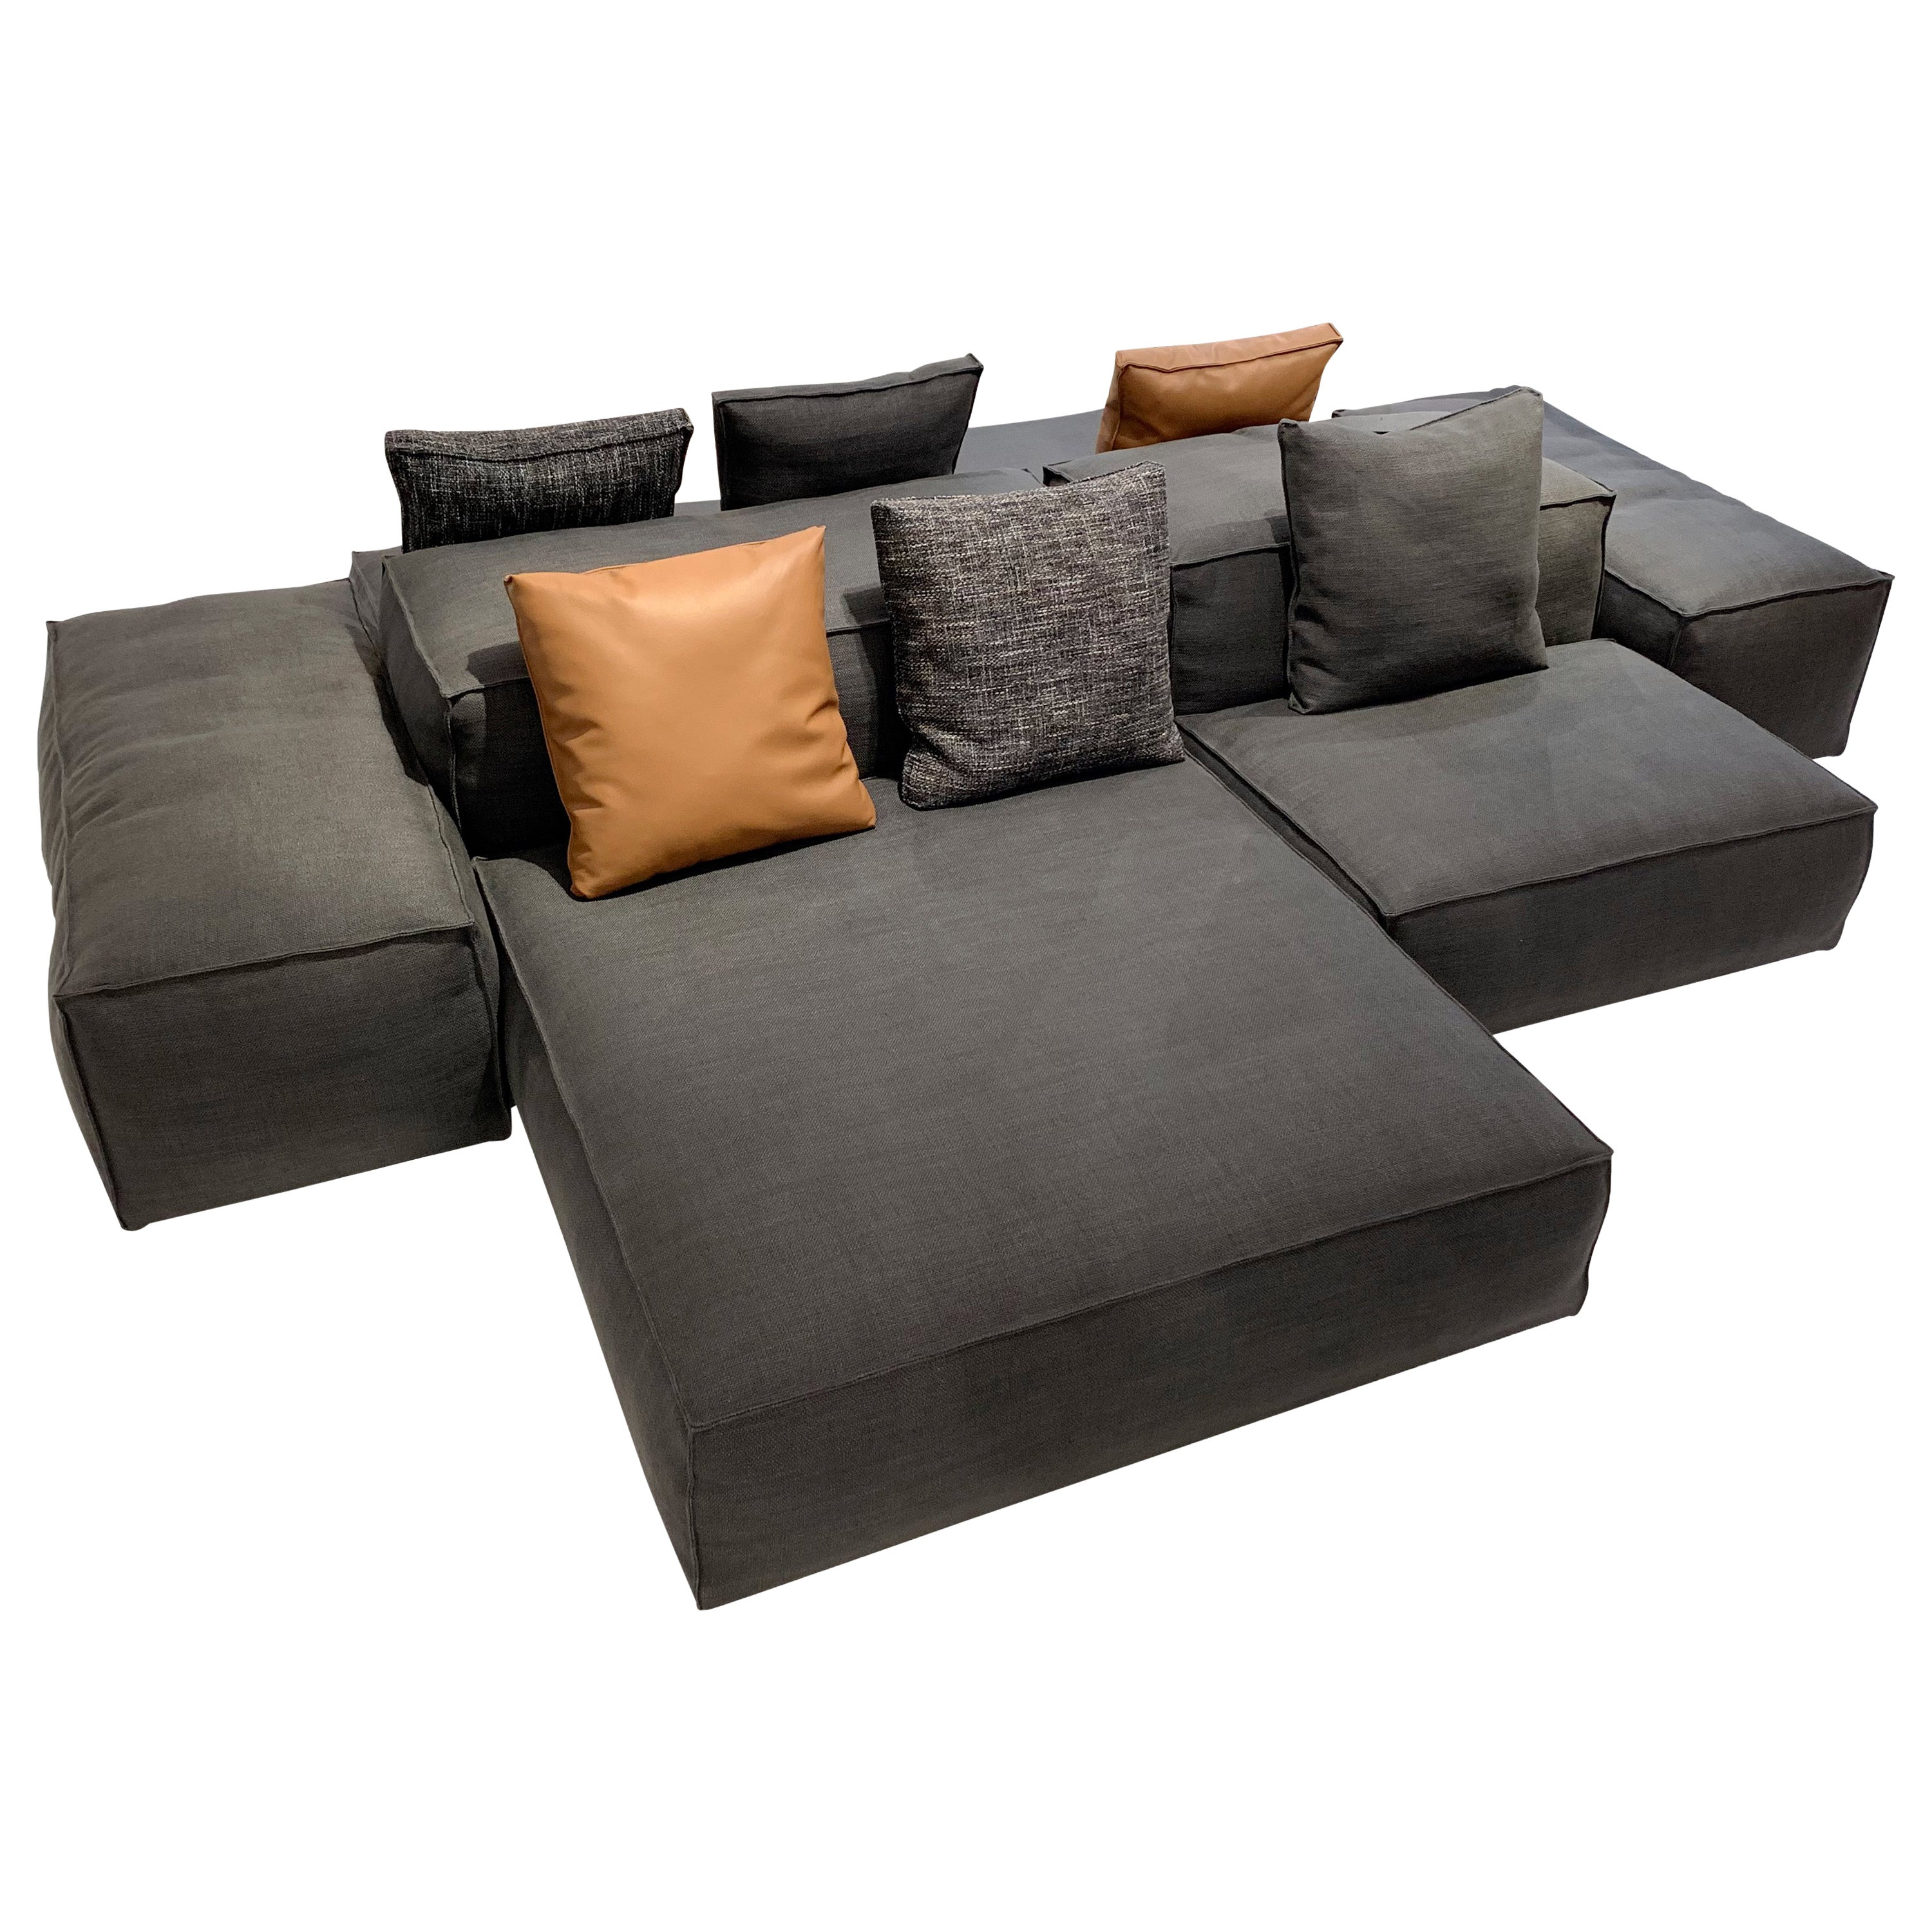 Piero Lissoni Modular Sofa Extrasoft 8 Piece Modular Sofa In Gray Fabric By Piero Lissoni And Living Divani